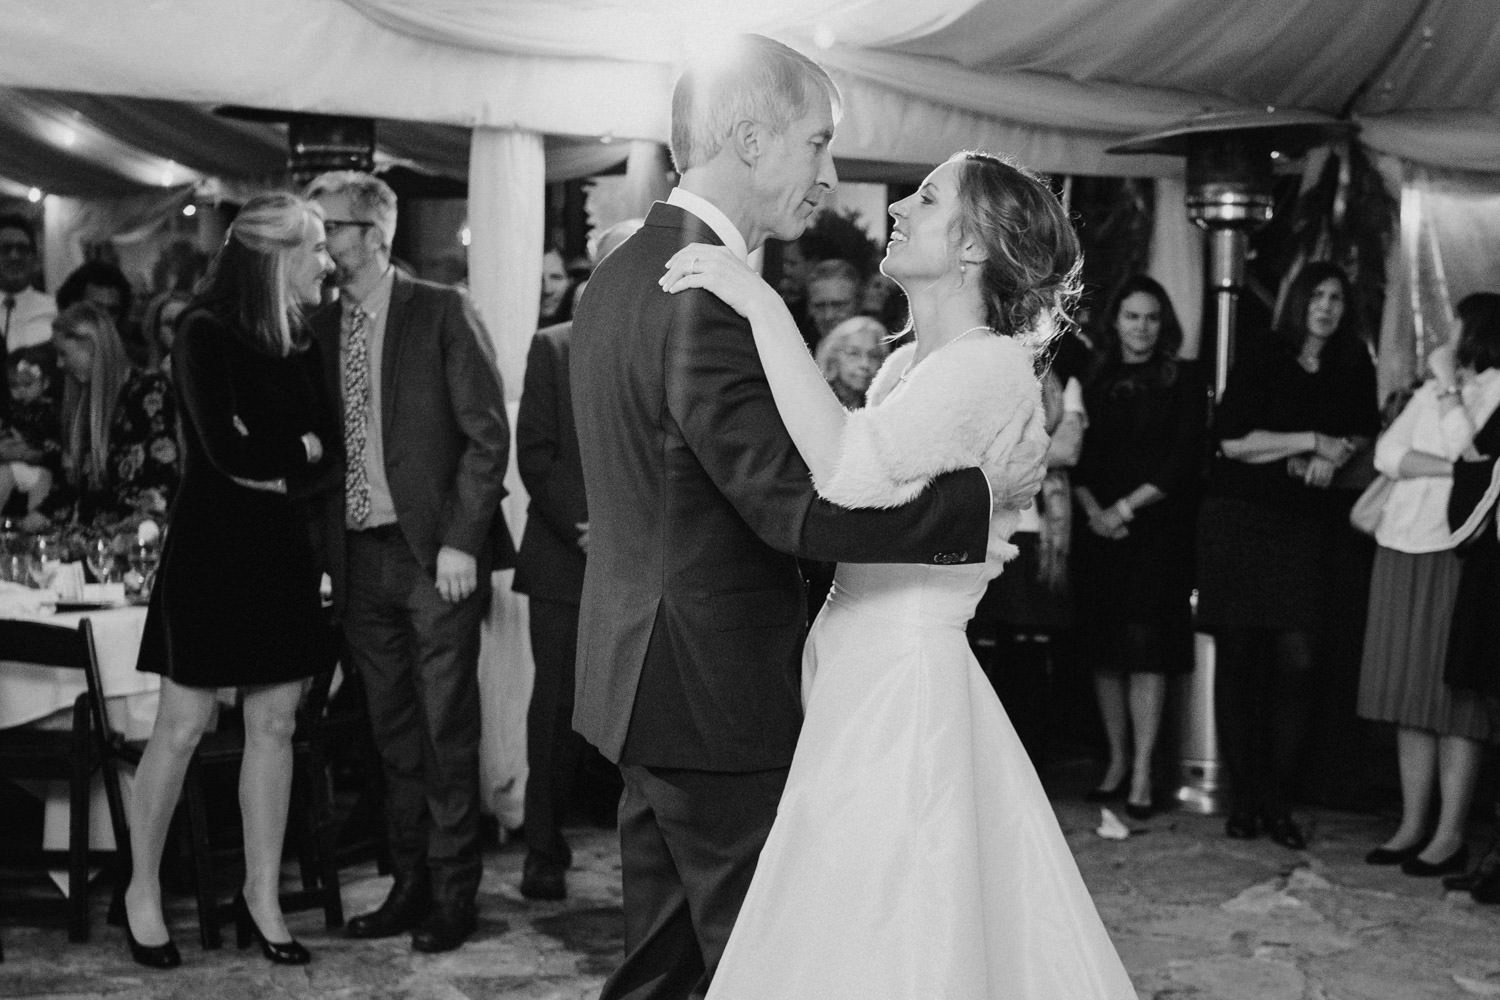 Millcreek Inn wedding black and white bride and groom dancing photo